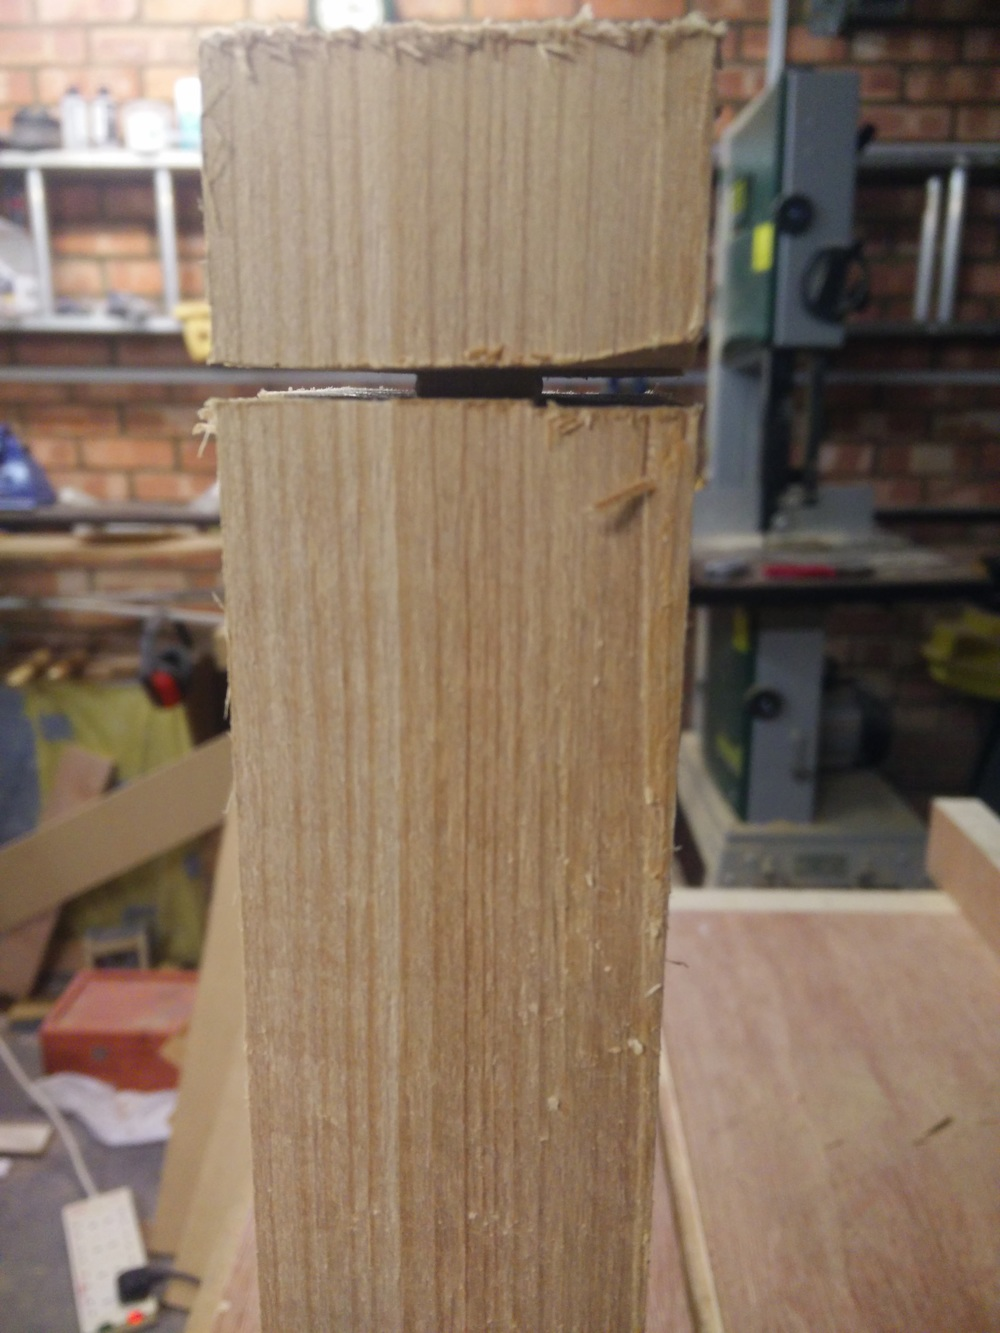 here I've cut all the way around the shoulder of a tenon.